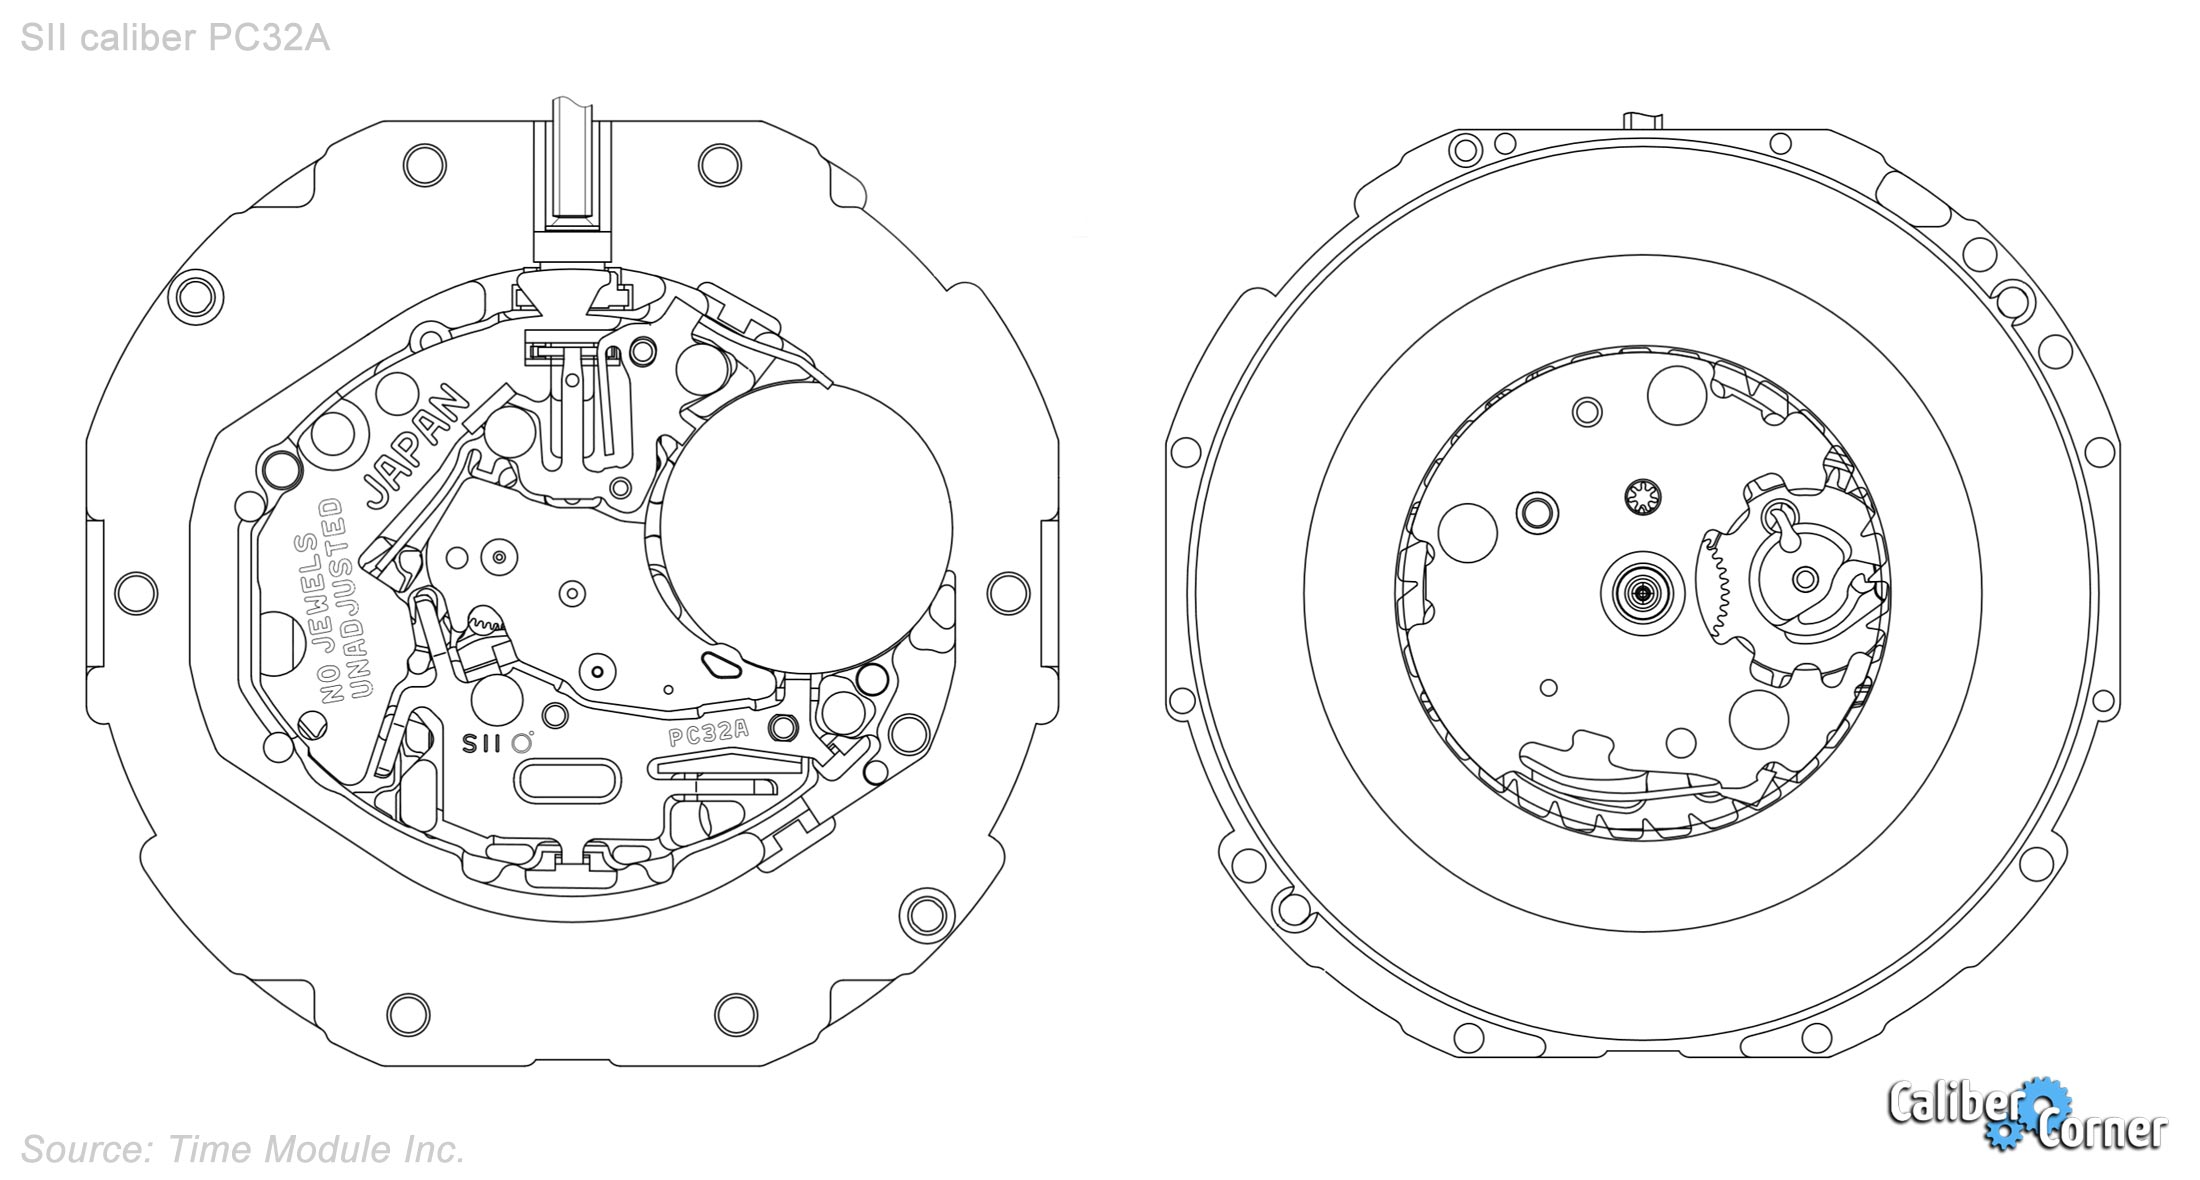 Seiko Sii Tmi Hattori Caliber Pc32a Drawing